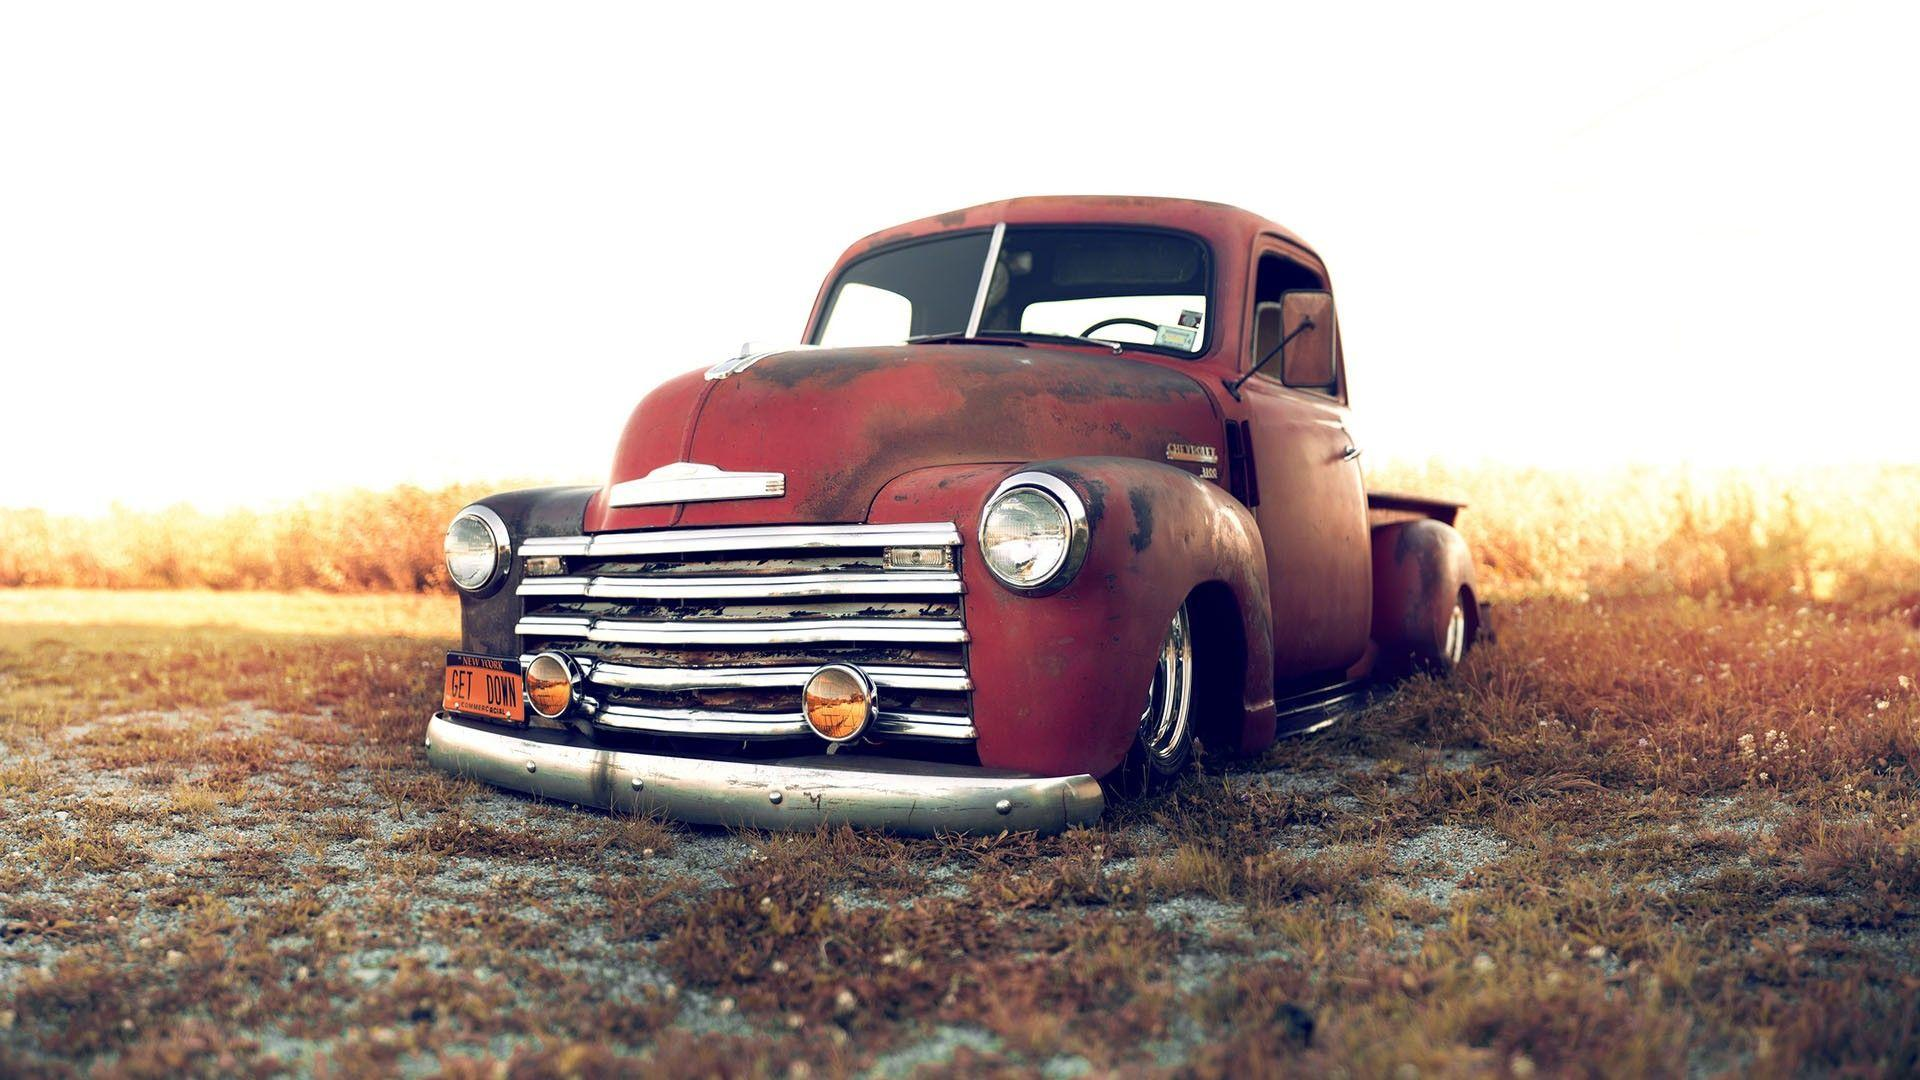 Classic Chevrolet Wallpaper For Mac KVL